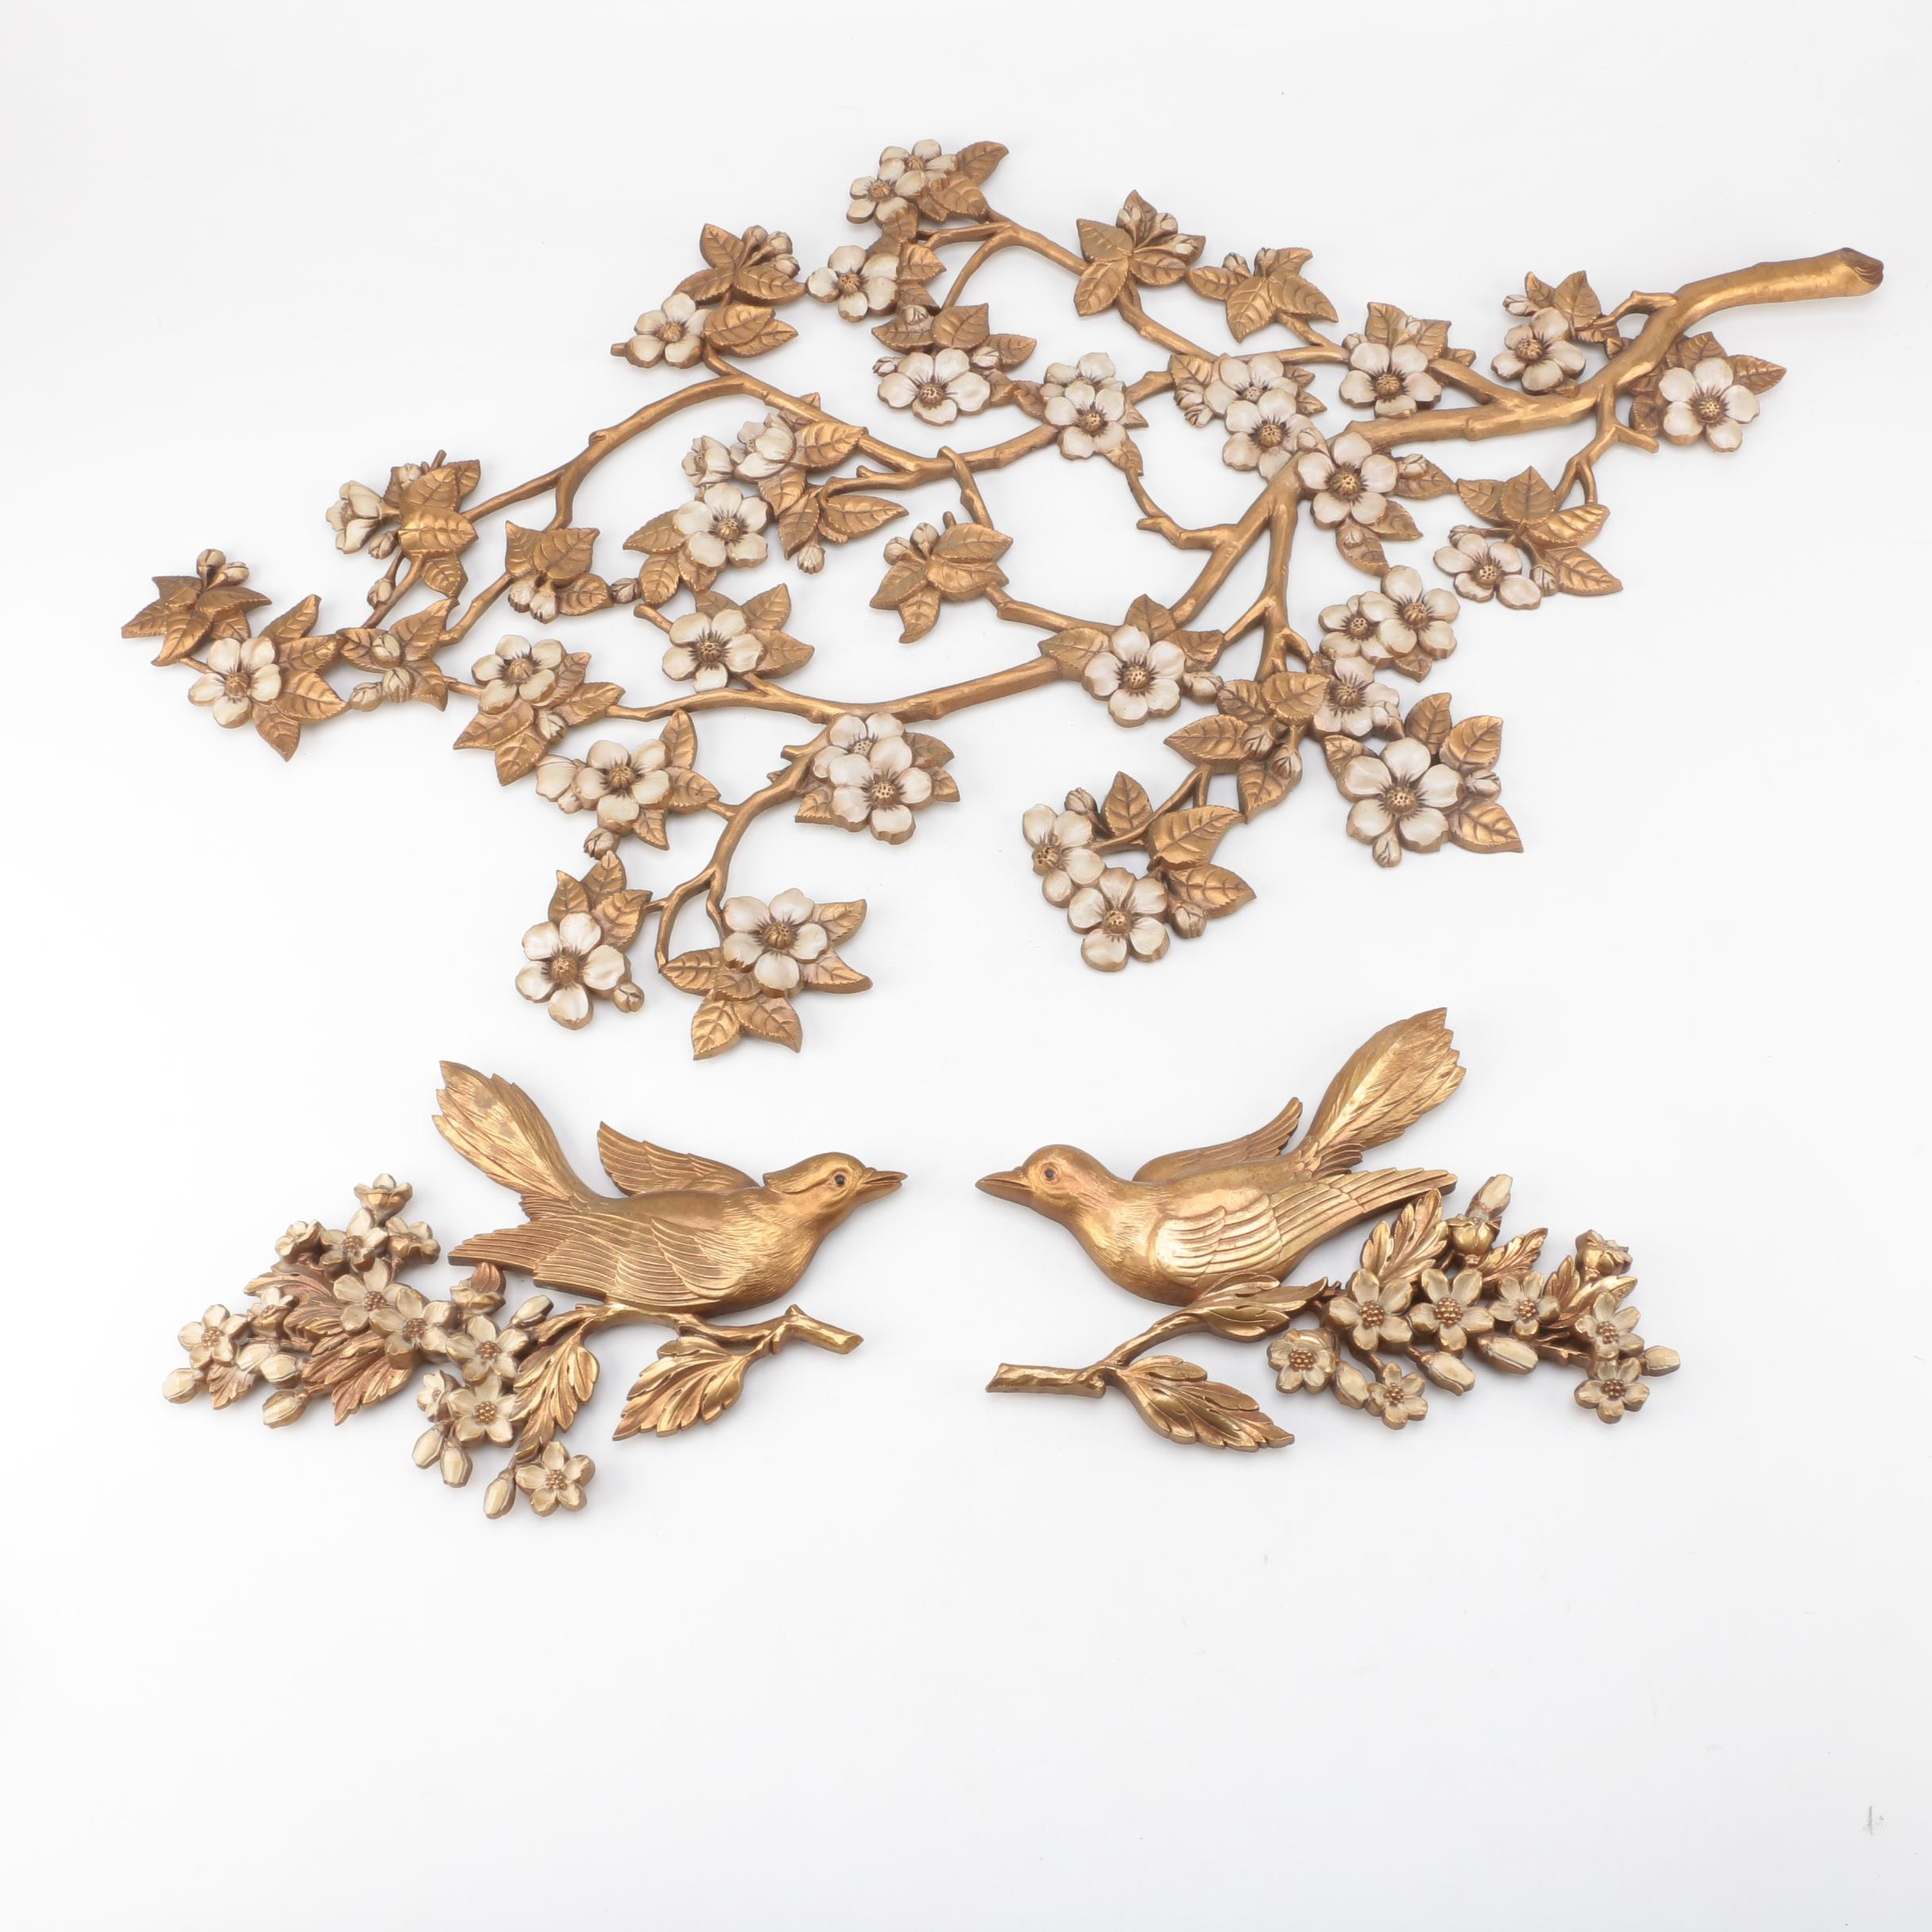 Vintage Flowering Branch and Bird Wall Decor Featuring Syroco